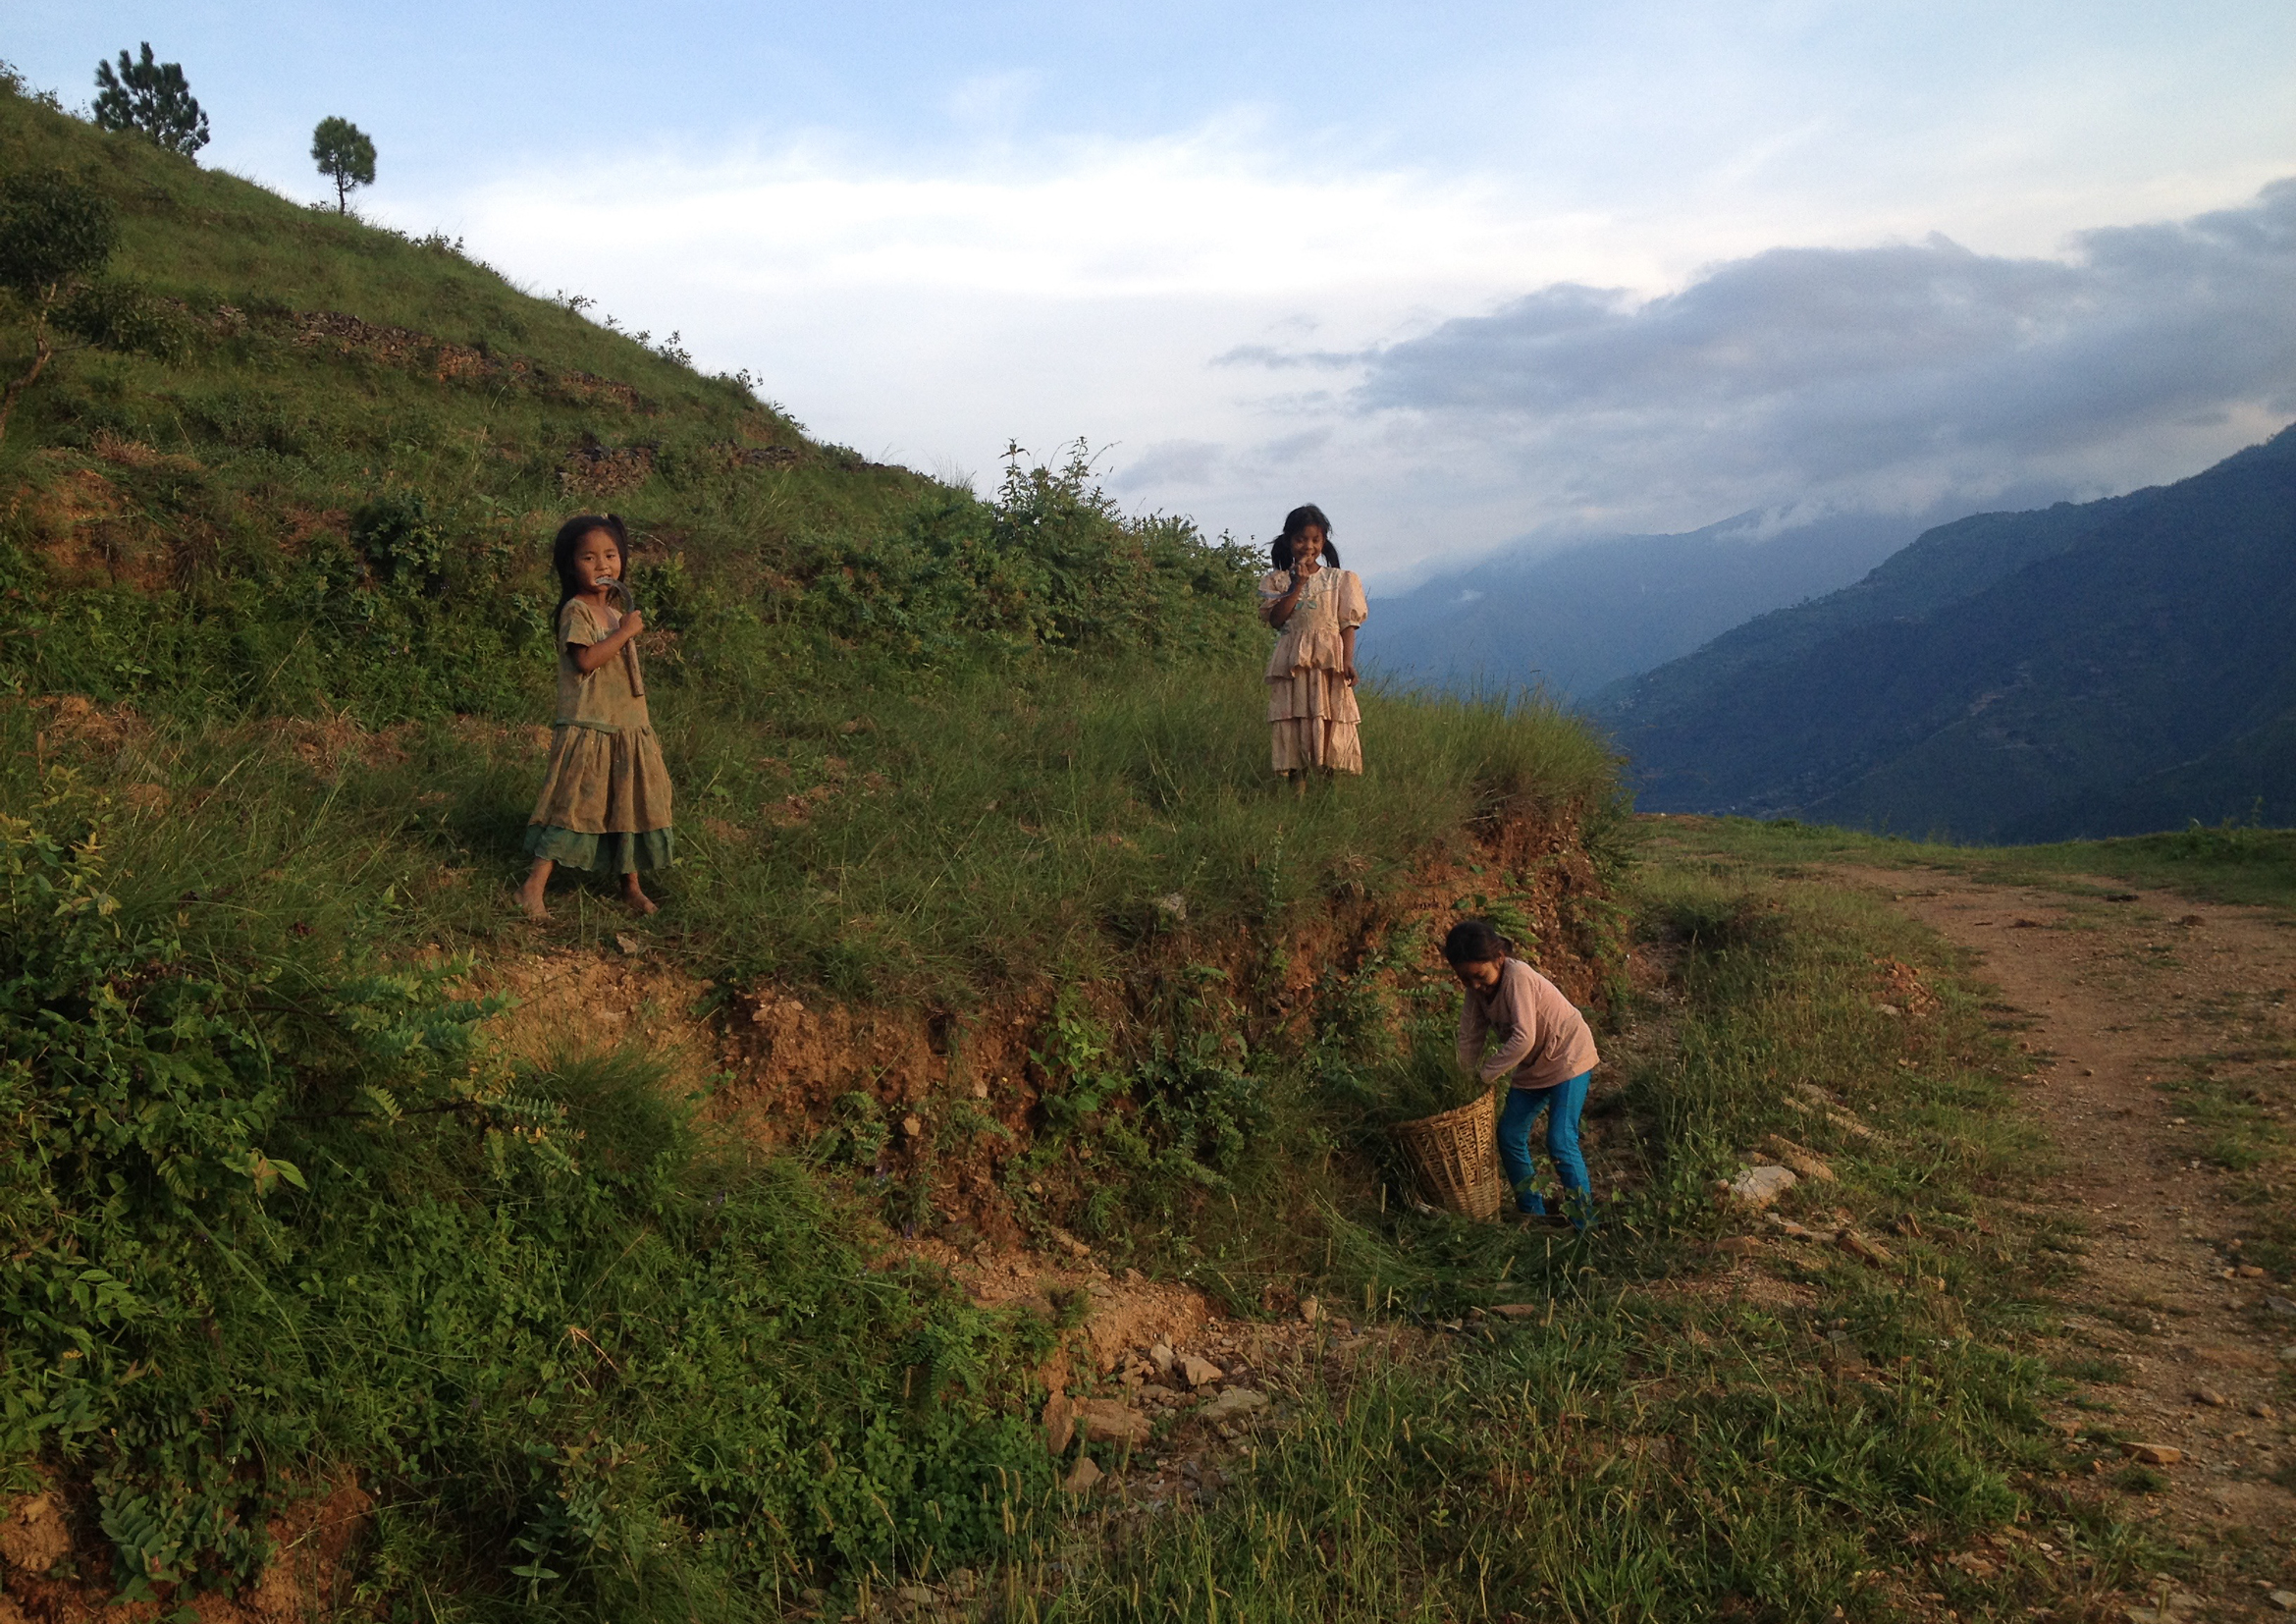 Photo: A group of young 7-10 year old girls gathering grass from the nearby hills on their way home from school. Photo Credit: Katherine Baxter